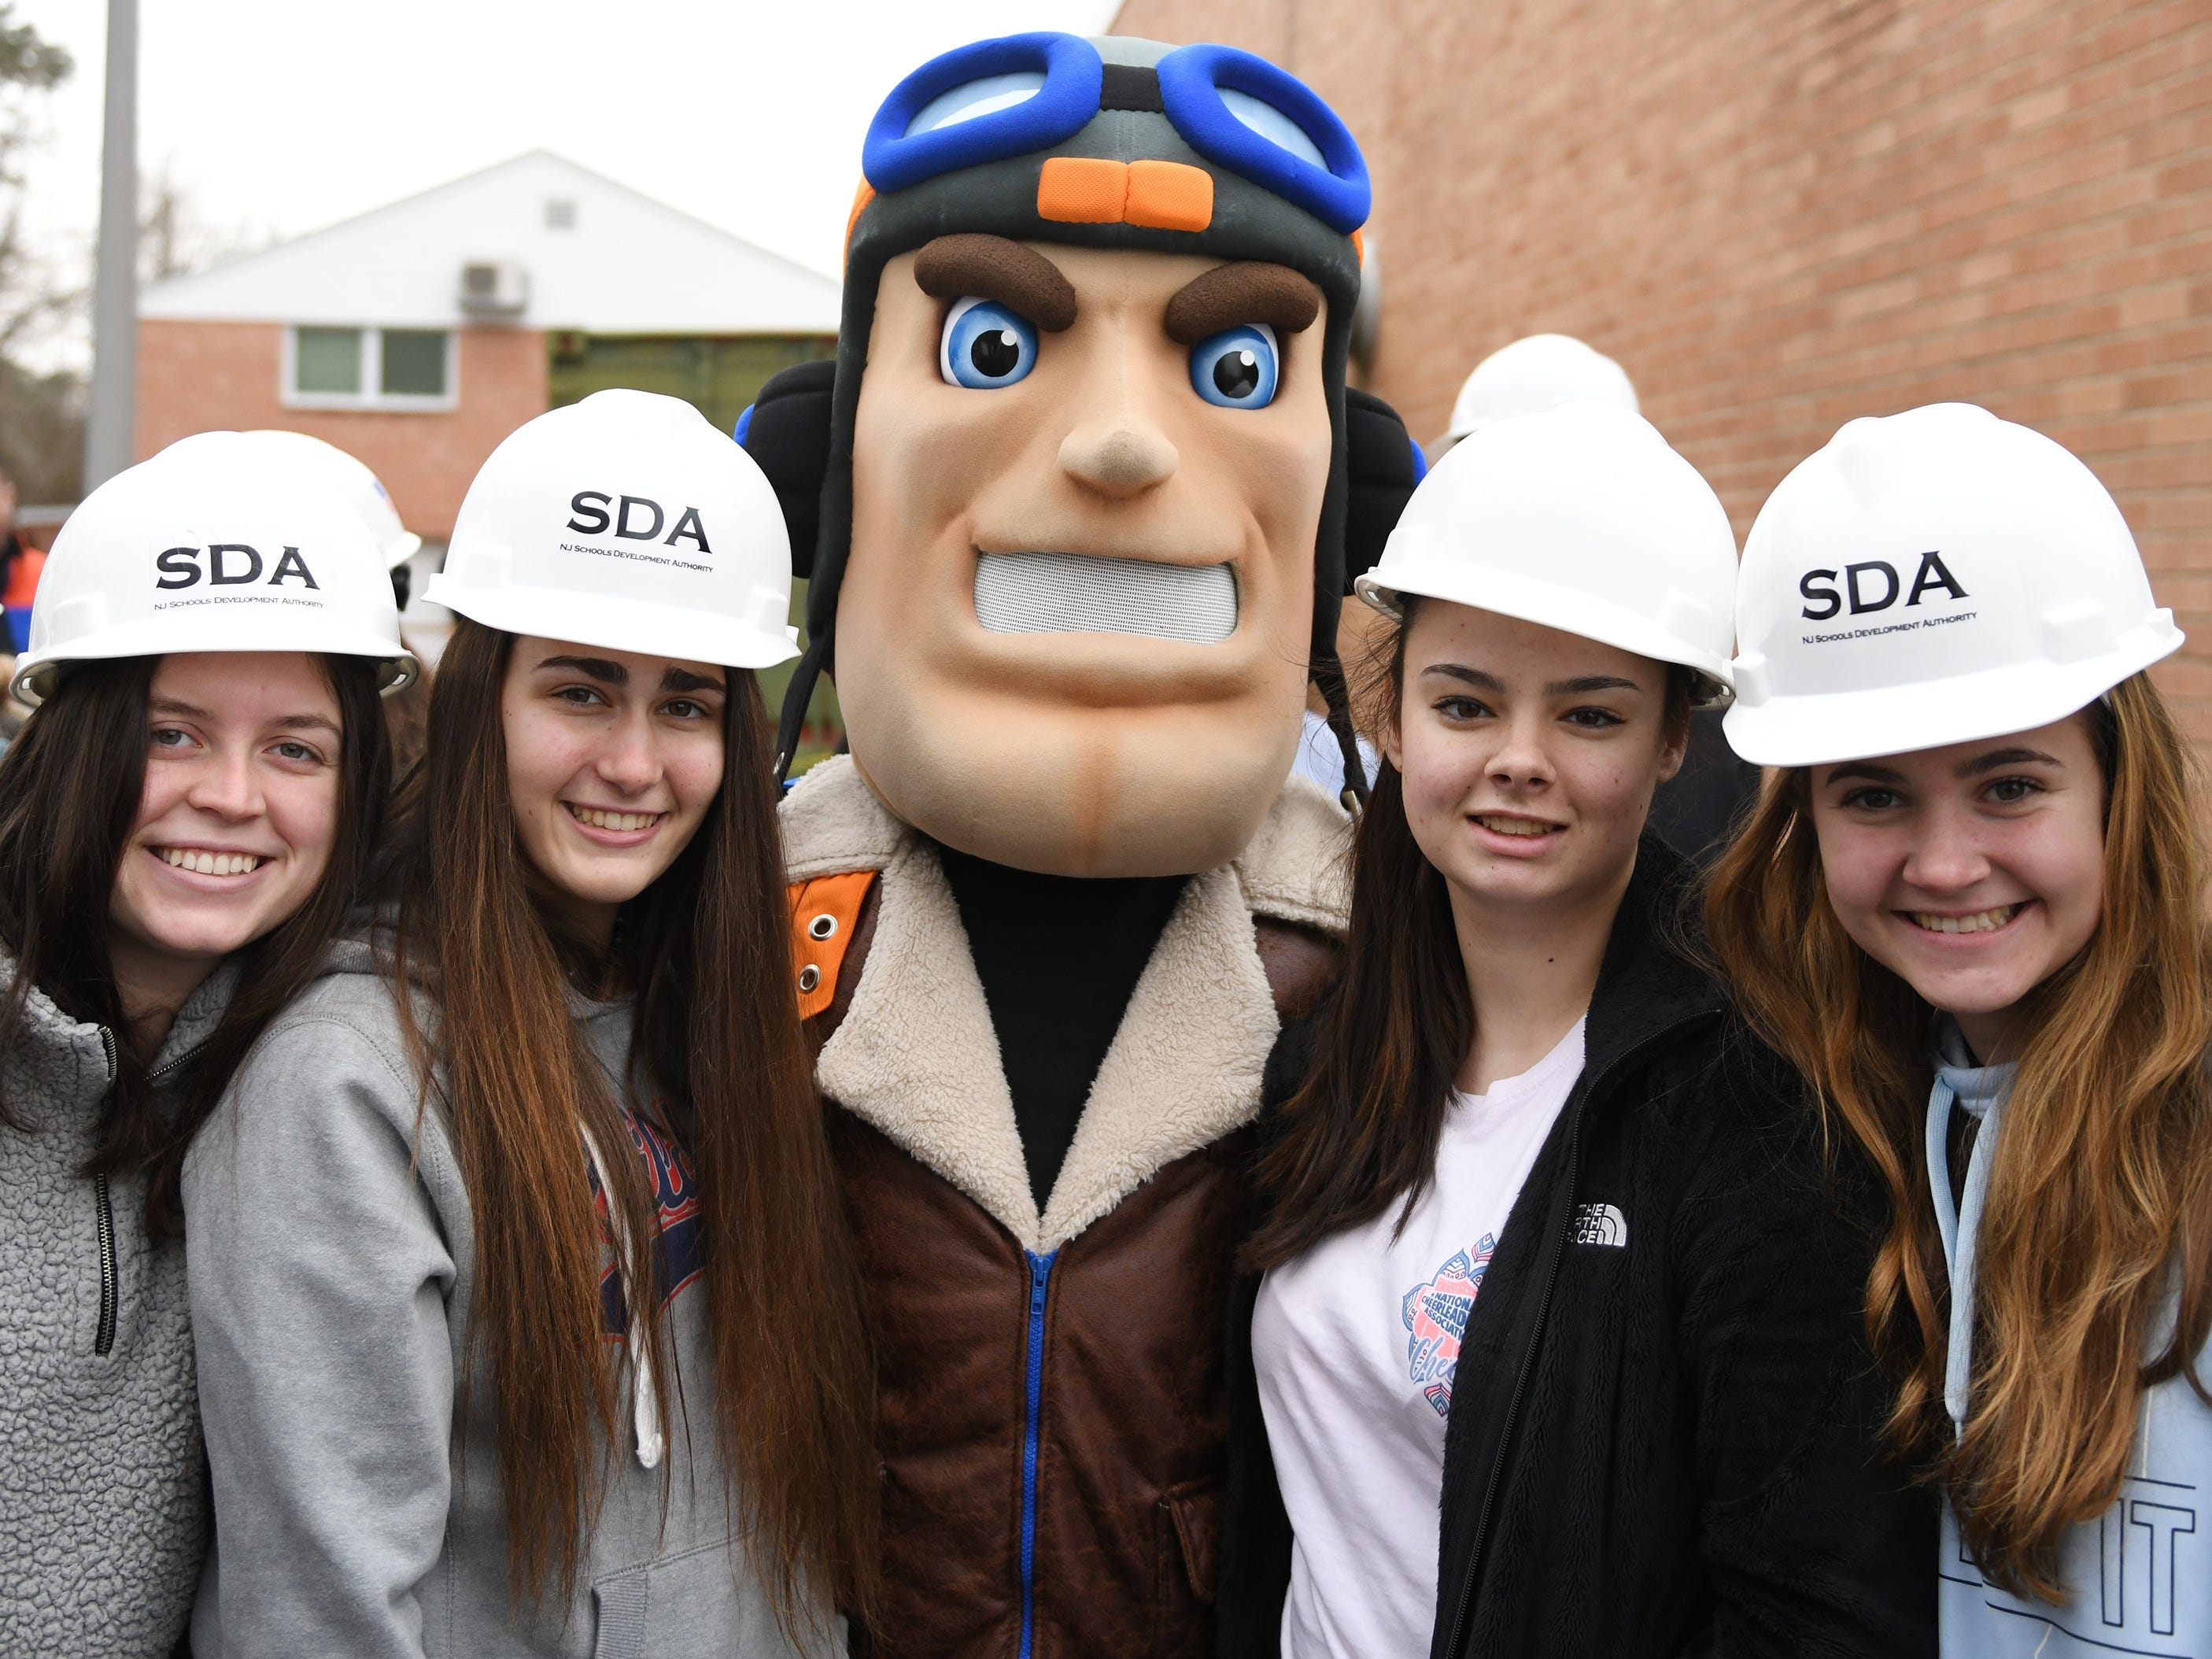 Maverick, the Millville High School mascot, joins students for a photo following a groundbreaking ceremony on Thursday, Feb. 7, 2019.